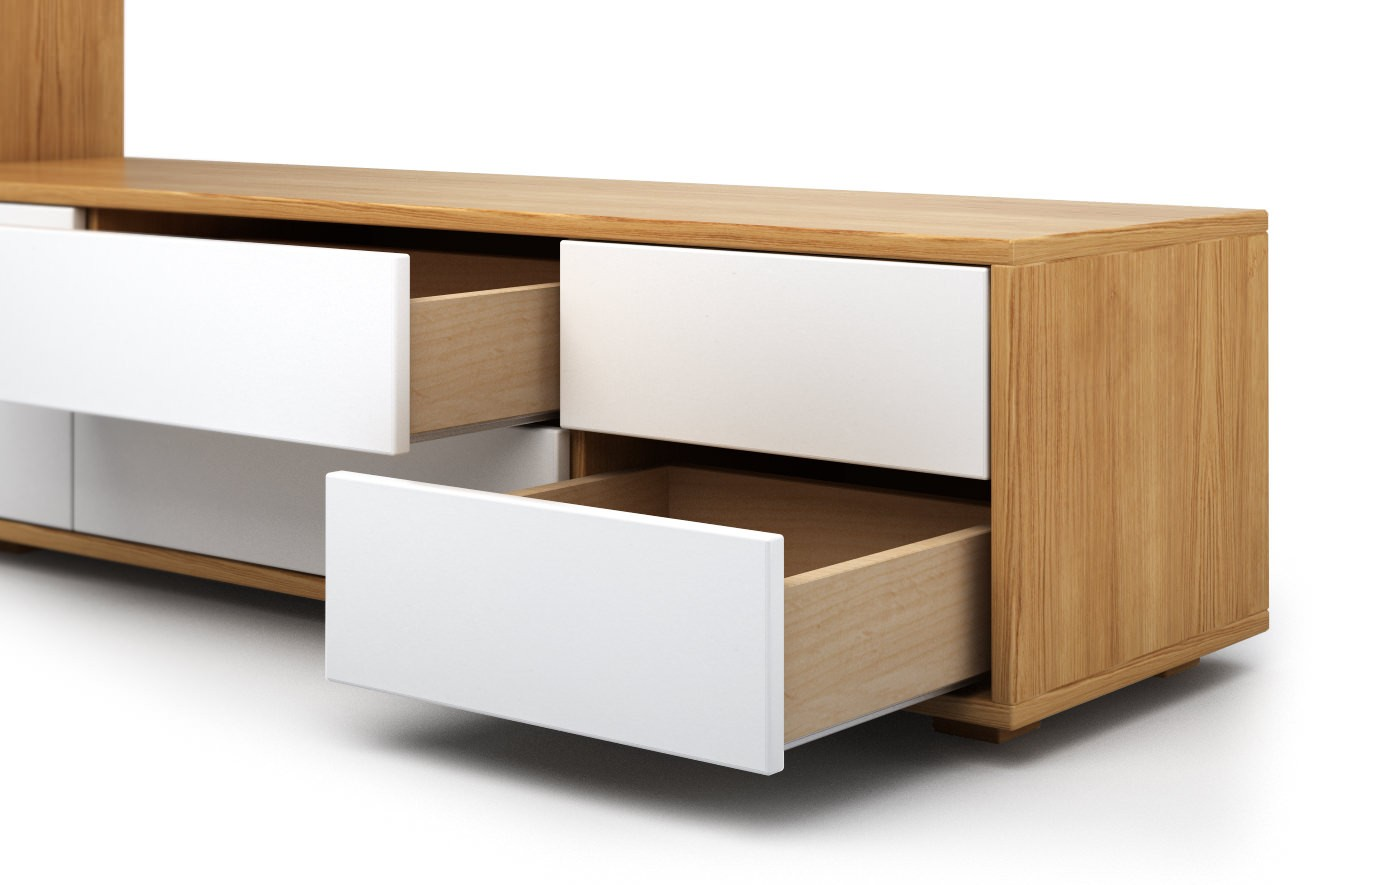 Sofia In Eiche Sideboard